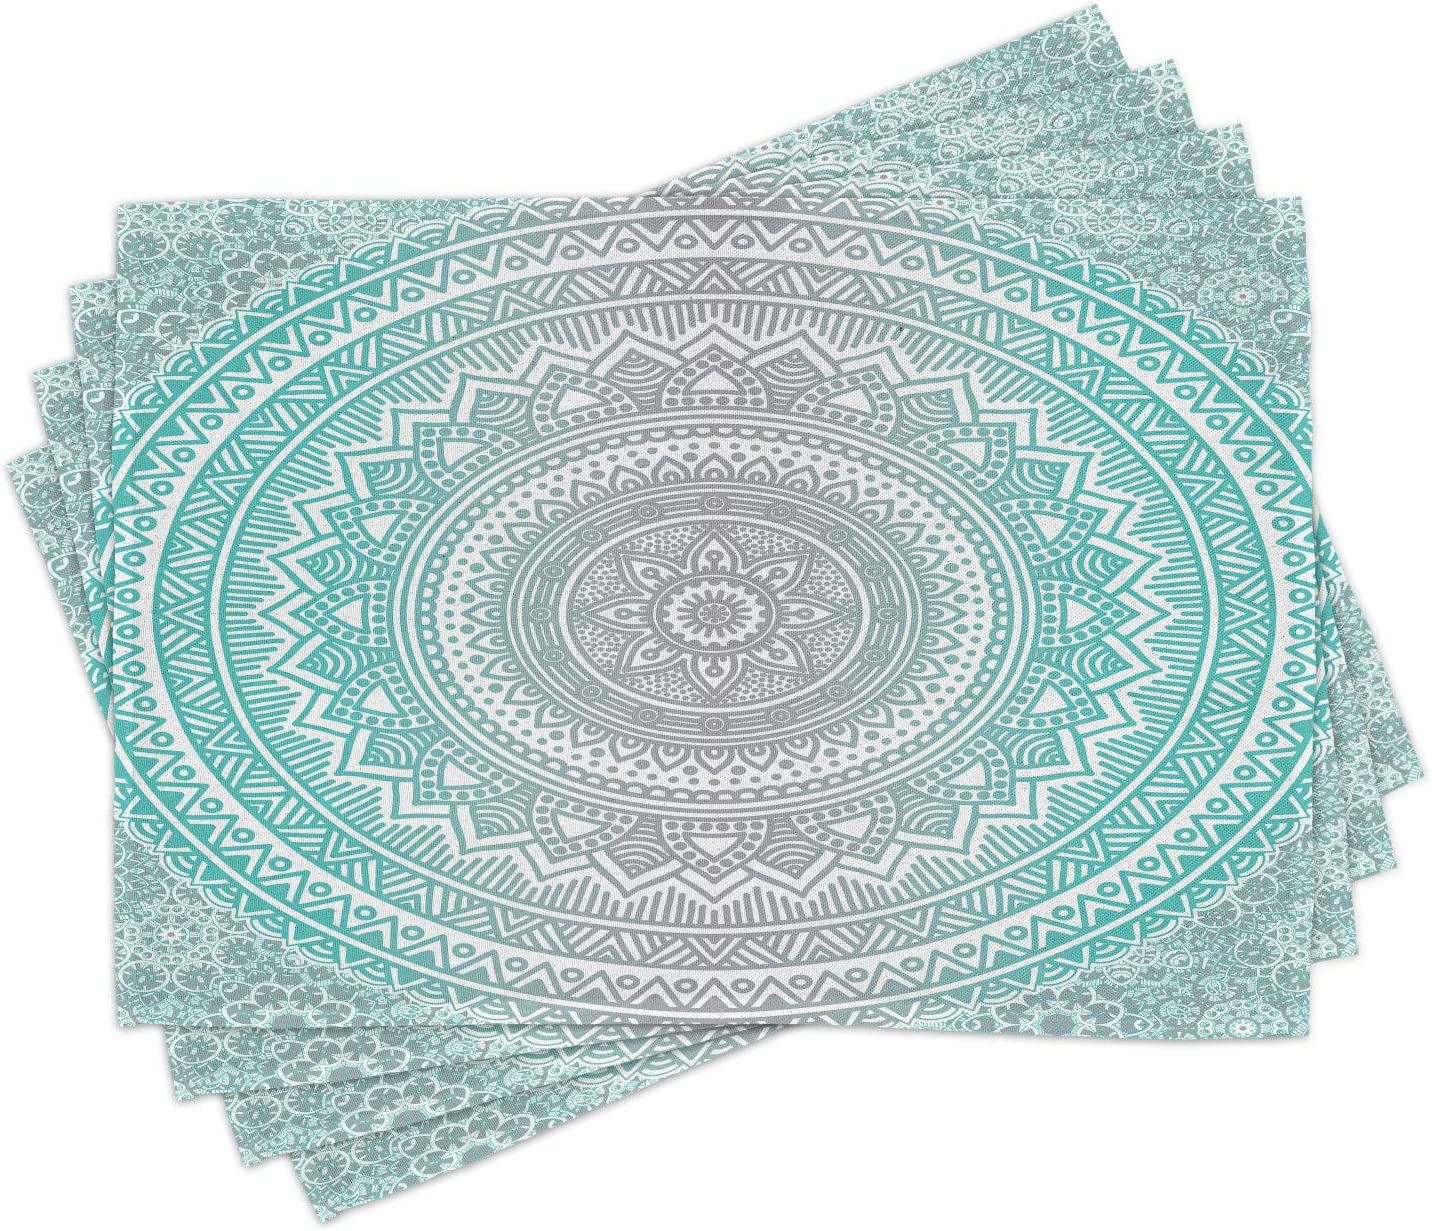 Ambesonne Grey and Aqua Place Mats Set of 4, Ombre Traditional Universe with Tribal Geometric Mandala Artwork, Washable Fabric Placemats for Dining Room Kitchen Table Decor, Aqua Grey